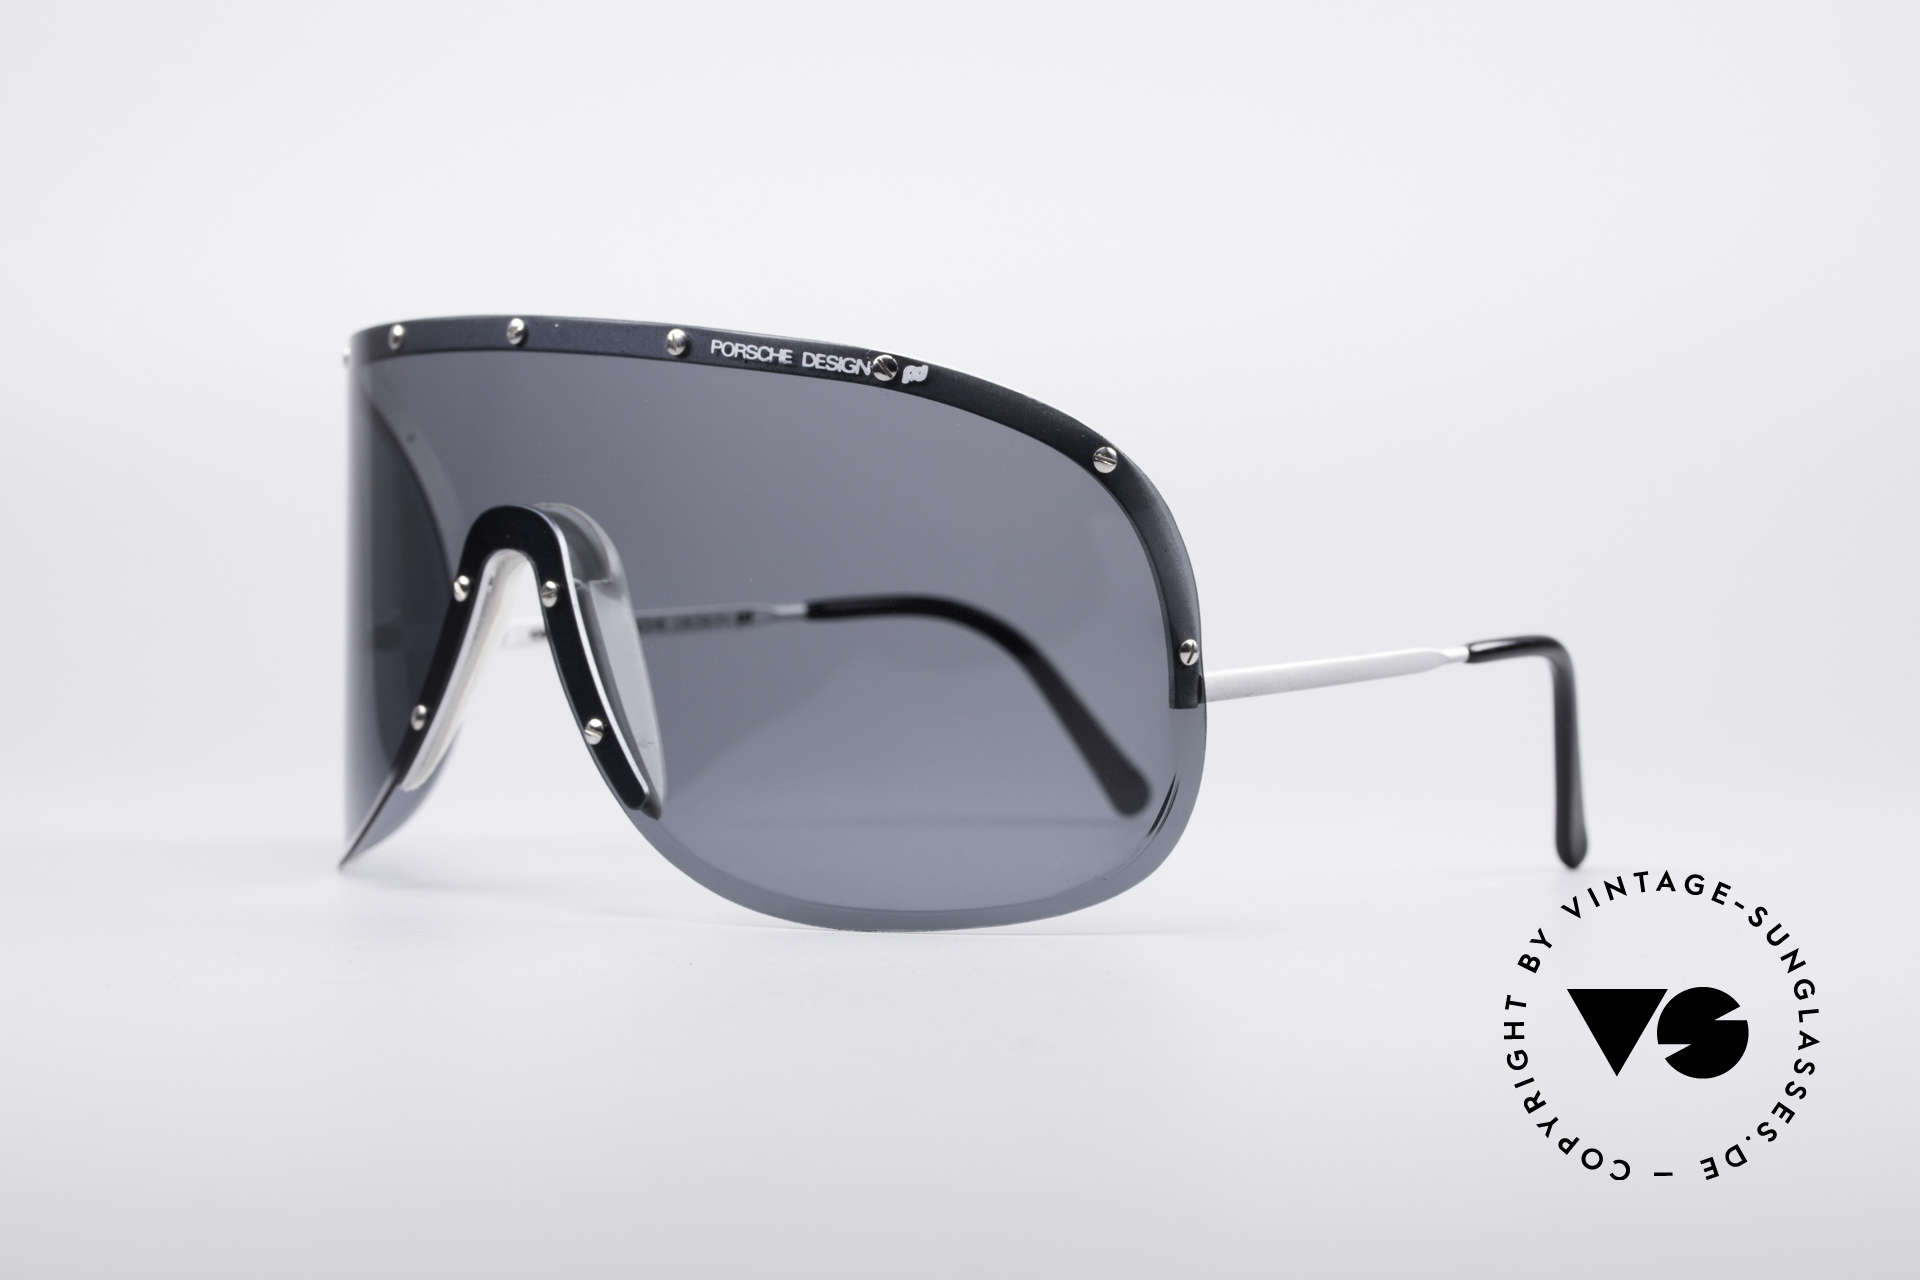 """Porsche 5620 Old Yoko Ono Shades Silver, worn by Yoko Ono (""""Rolling Stone"""" magazine cover, 1981), Made for Men and Women"""